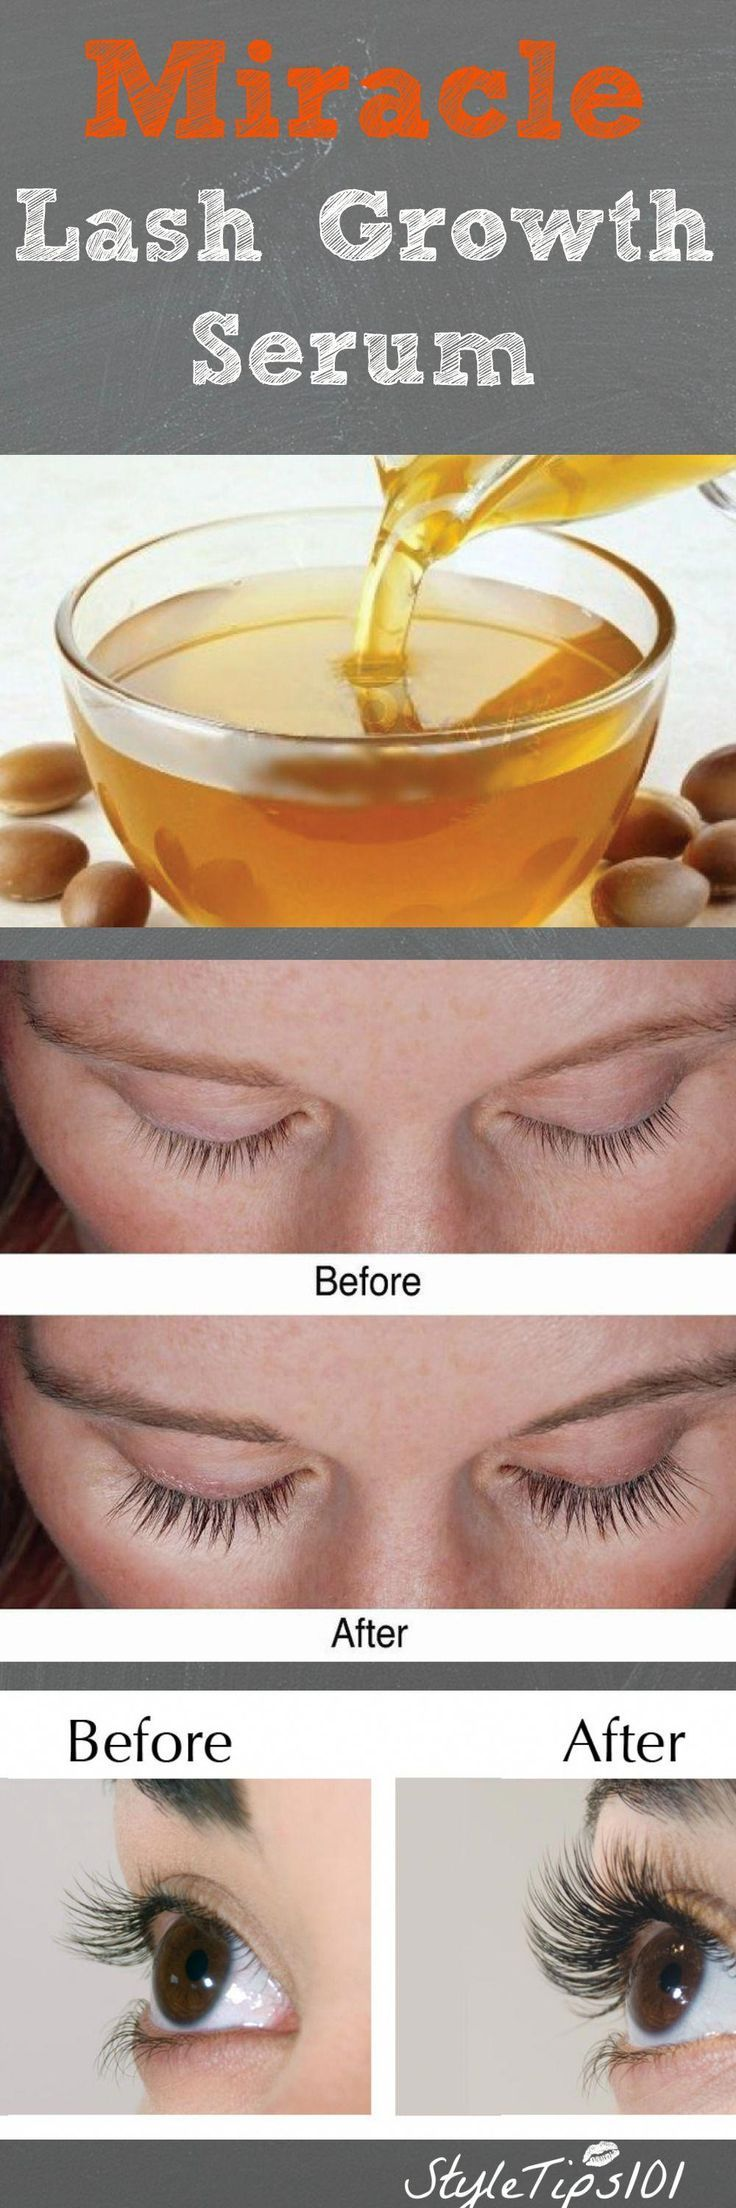 Coconut oil castor oil miracle growth makeuptips